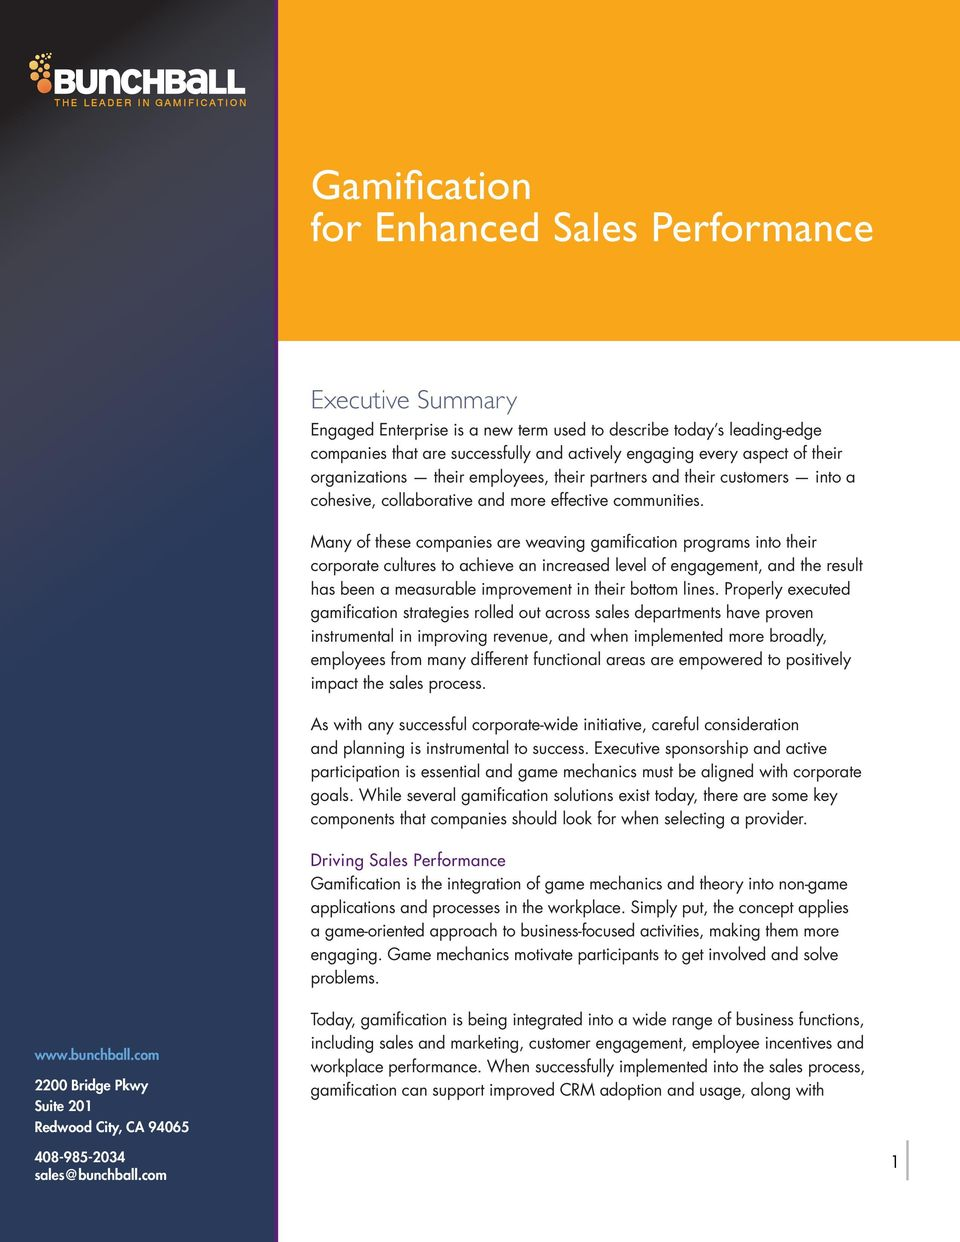 Many of these companies are weaving gamification programs into their corporate cultures to achieve an increased level of engagement, and the result has been a measurable improvement in their bottom